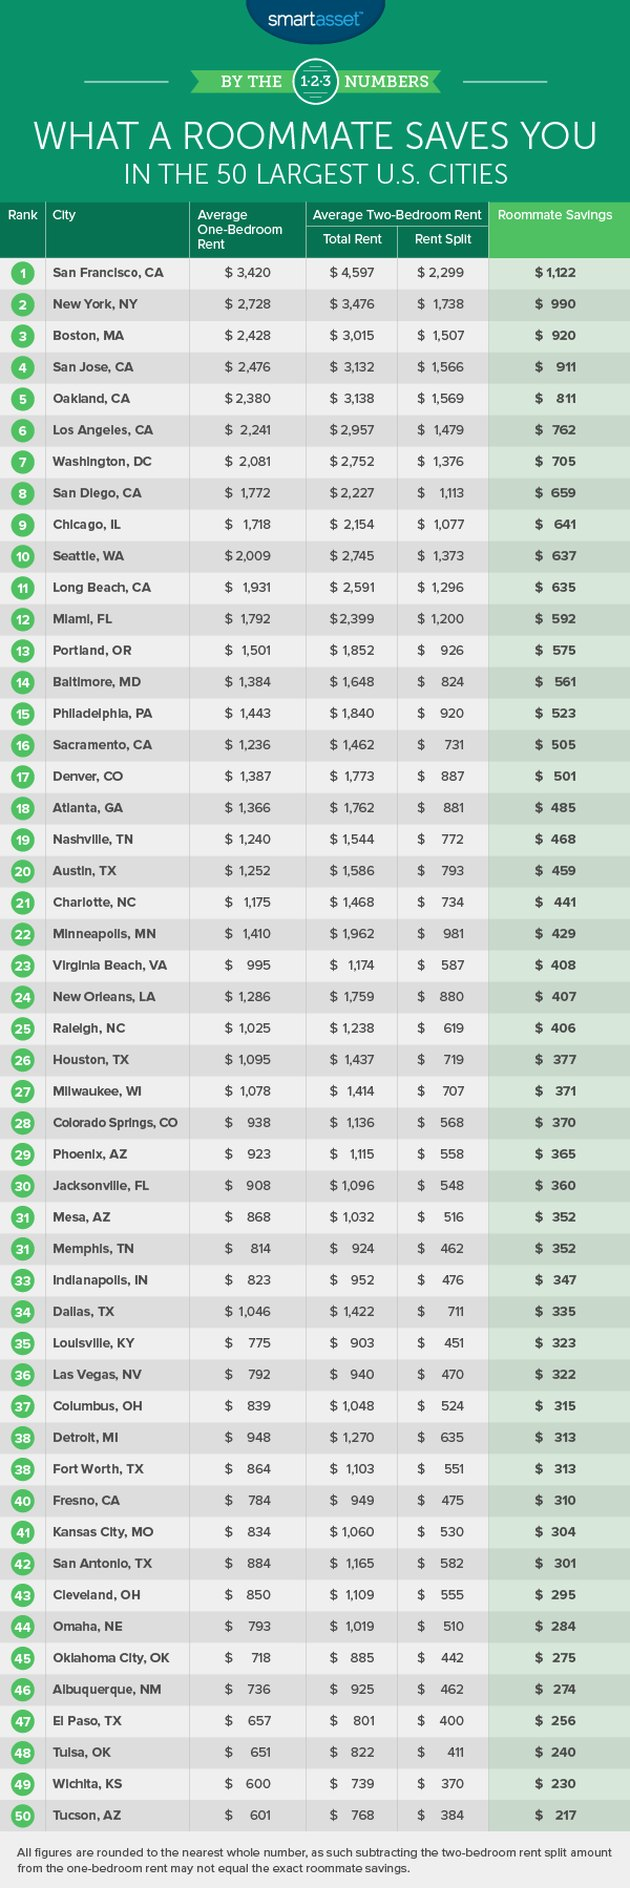 Smart Asset chart - roommate savings in 50 largest US cities